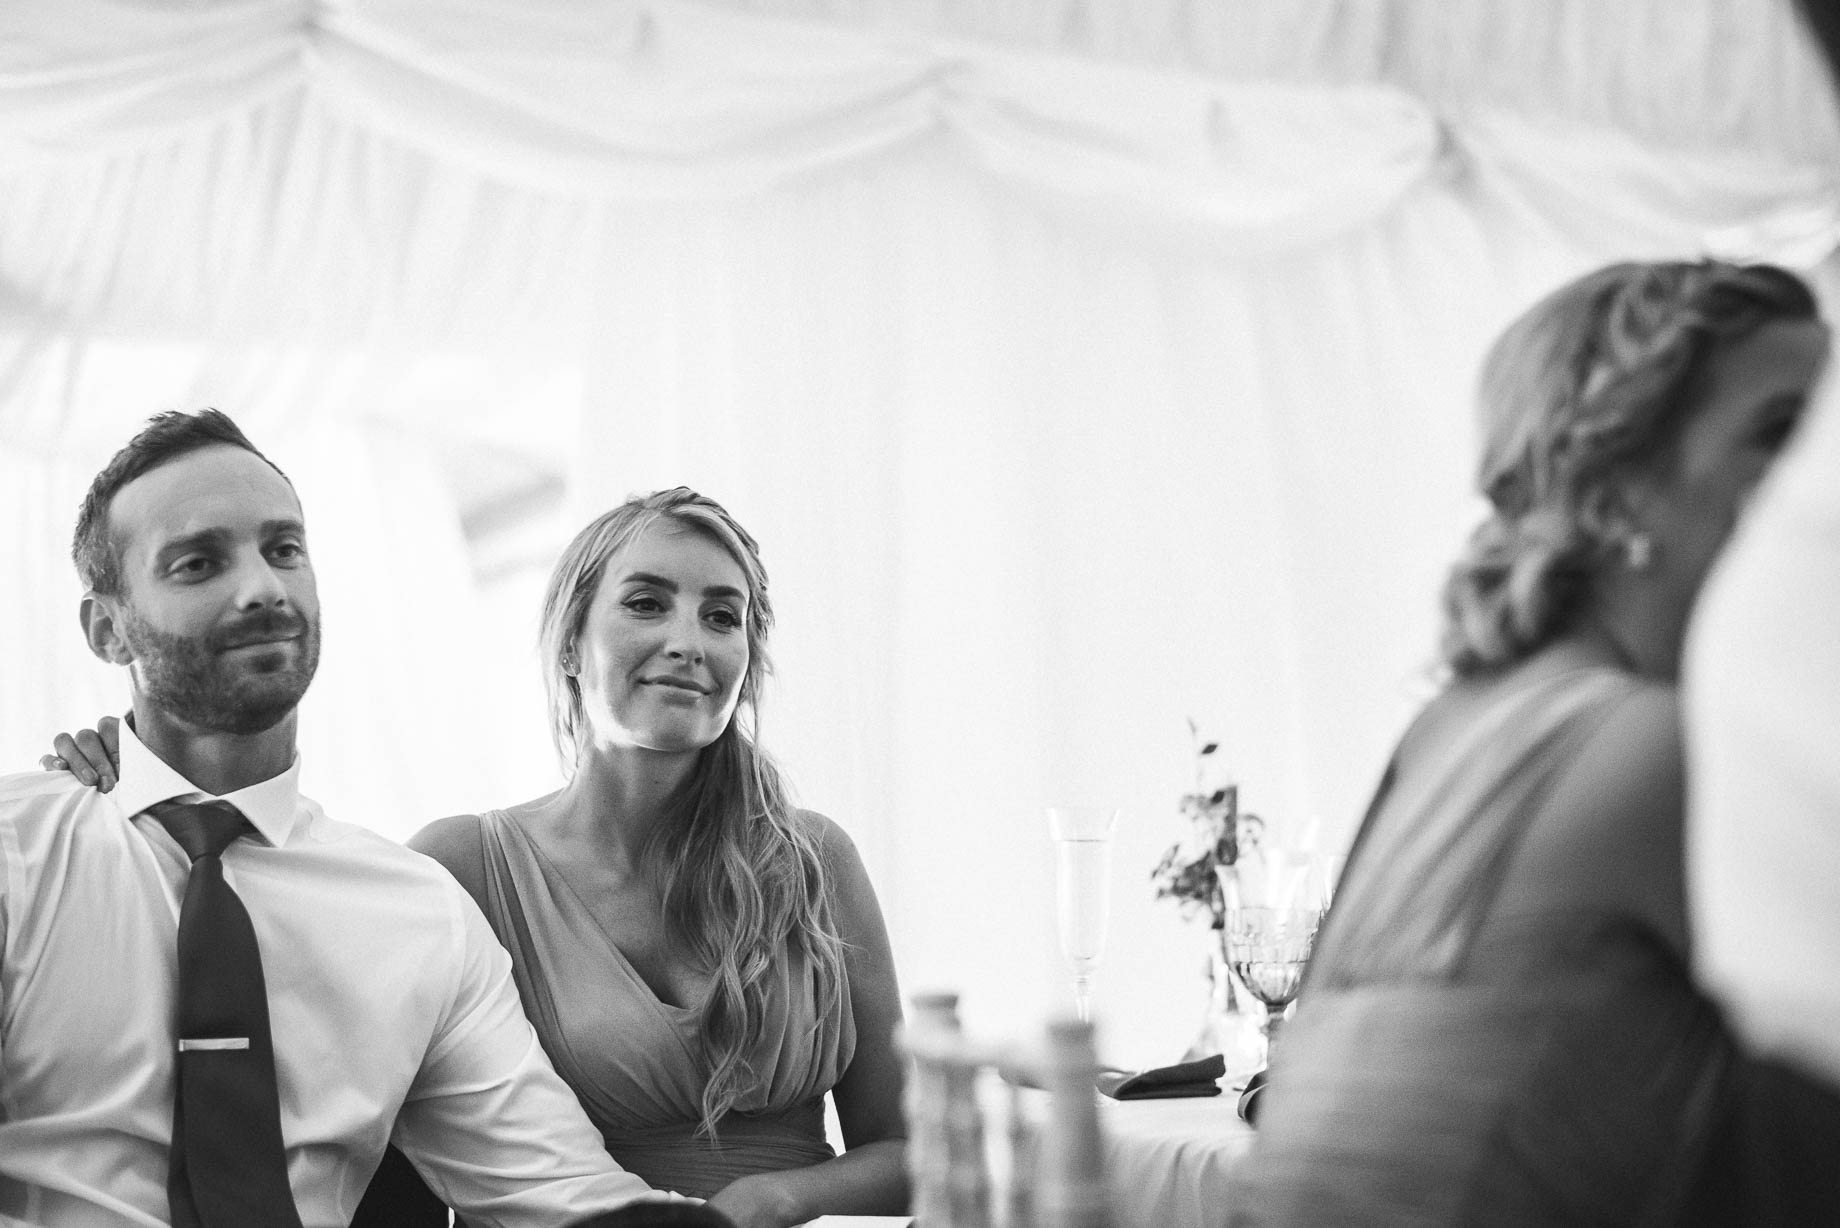 surrey-wedding-photography-guy-collier-photography-claire-and-tom-200-of-227